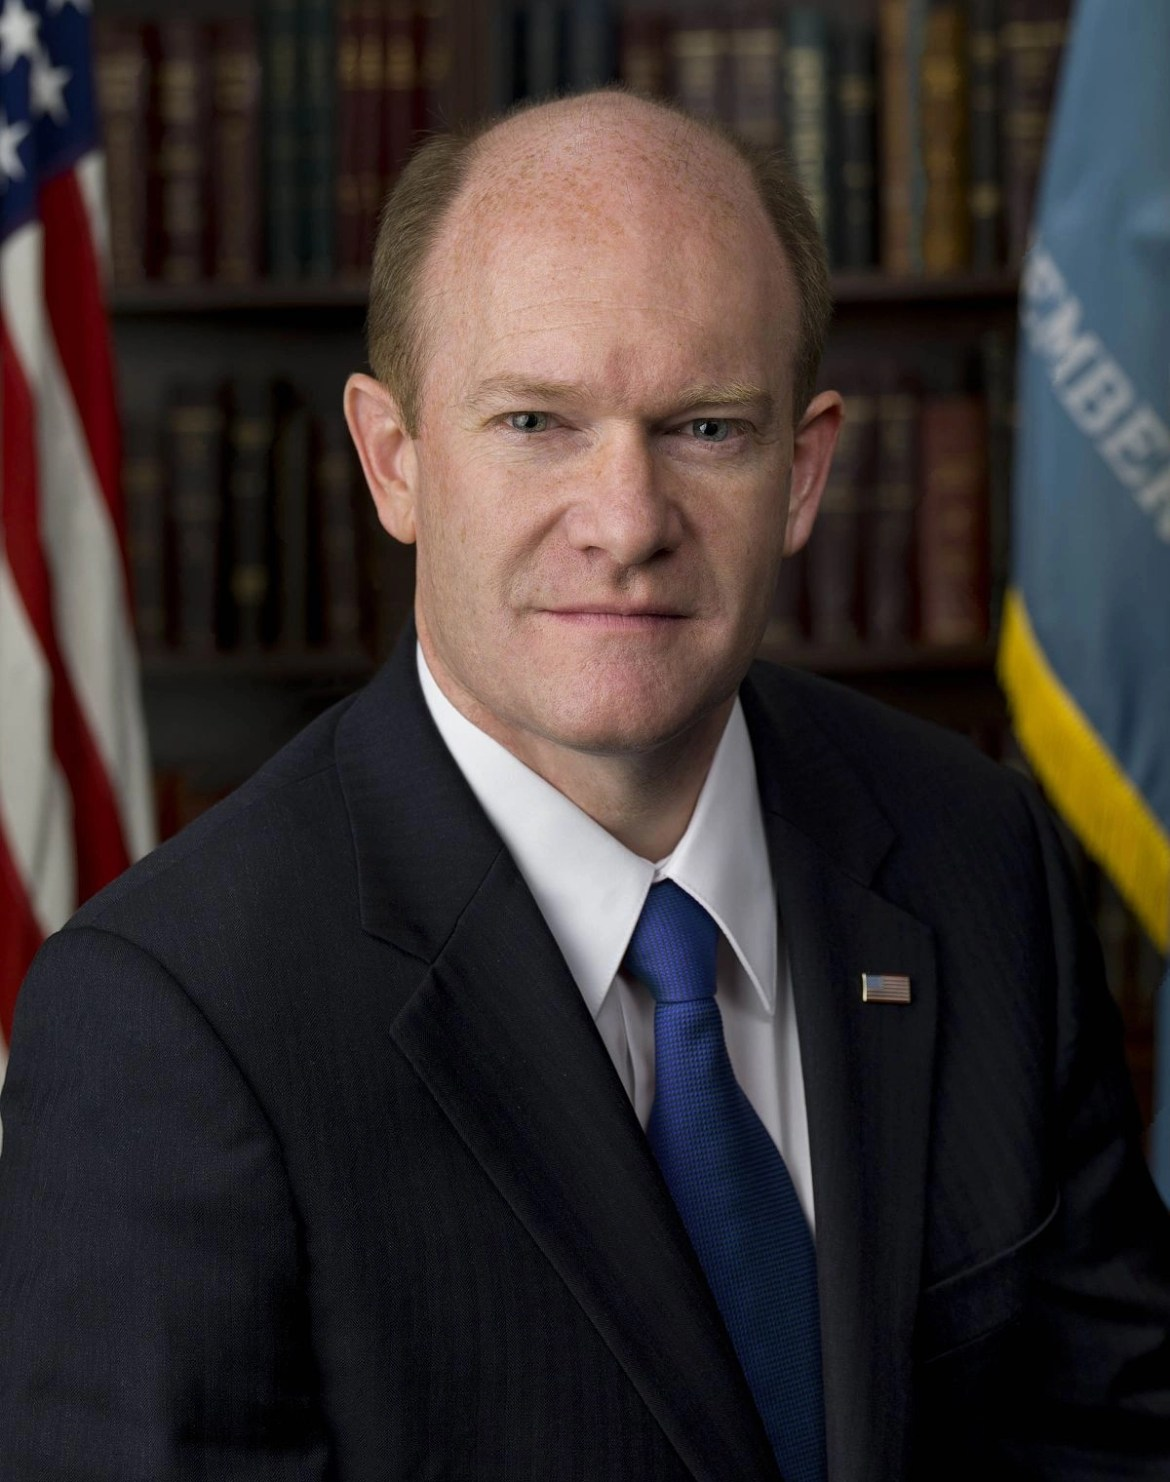 Biden Secretary of State candidate: Chris Coons